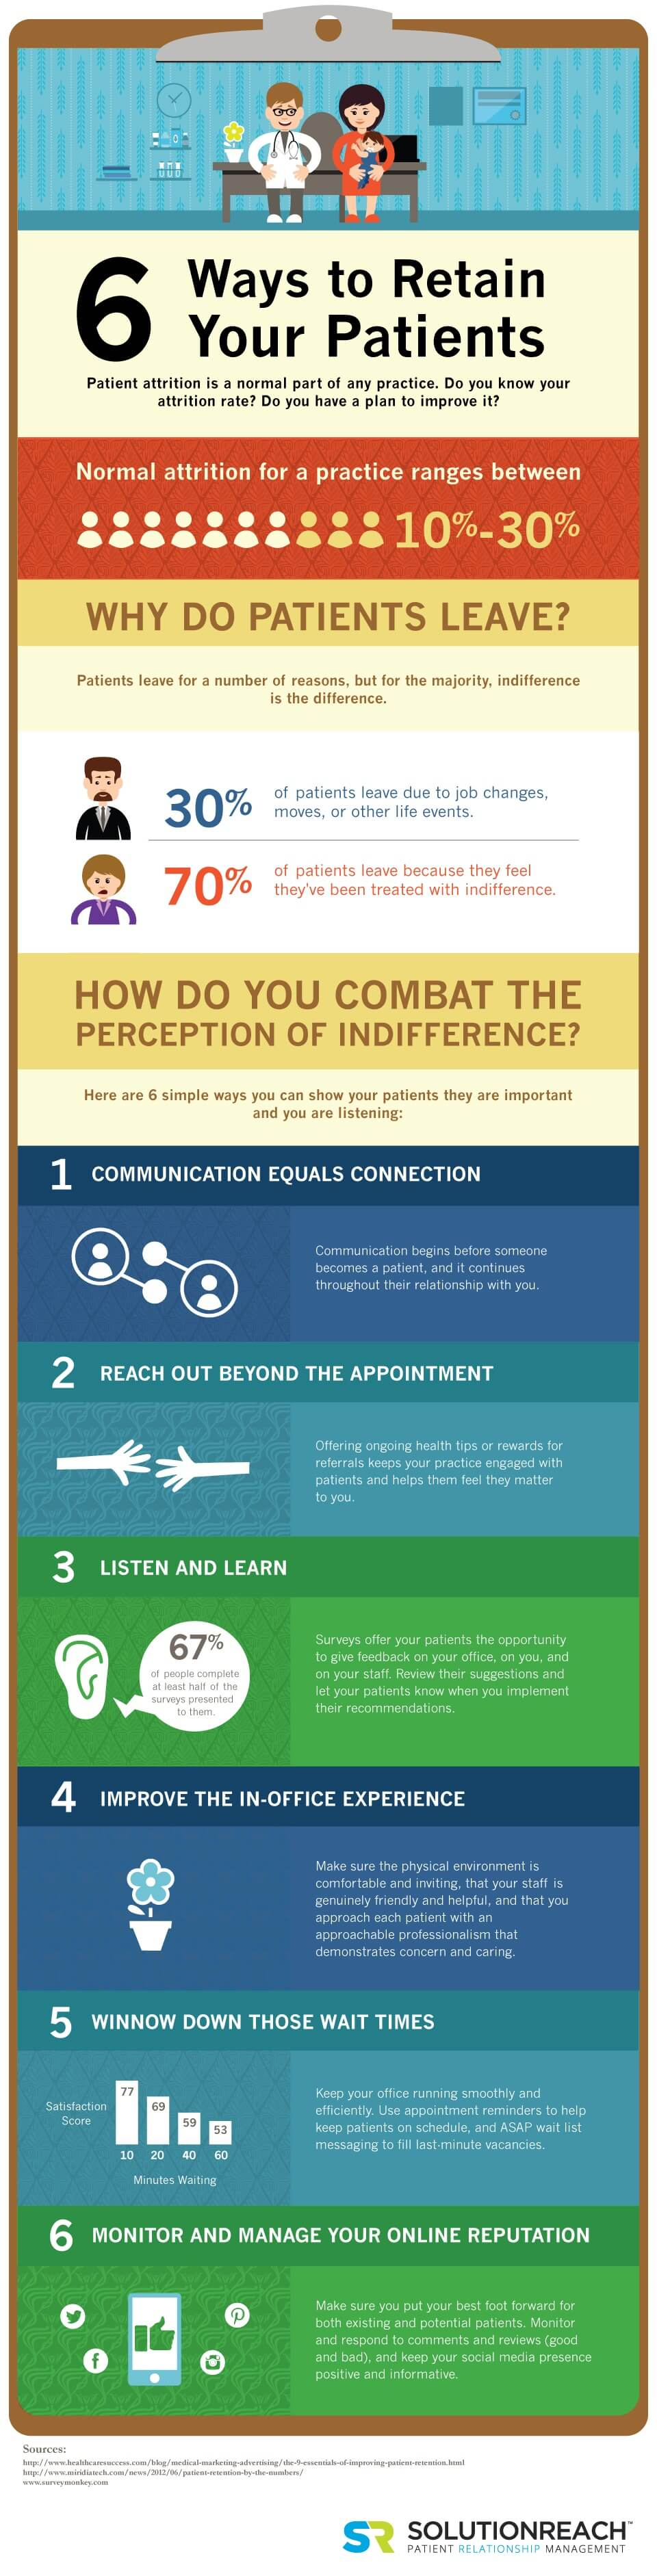 Retention Infographic